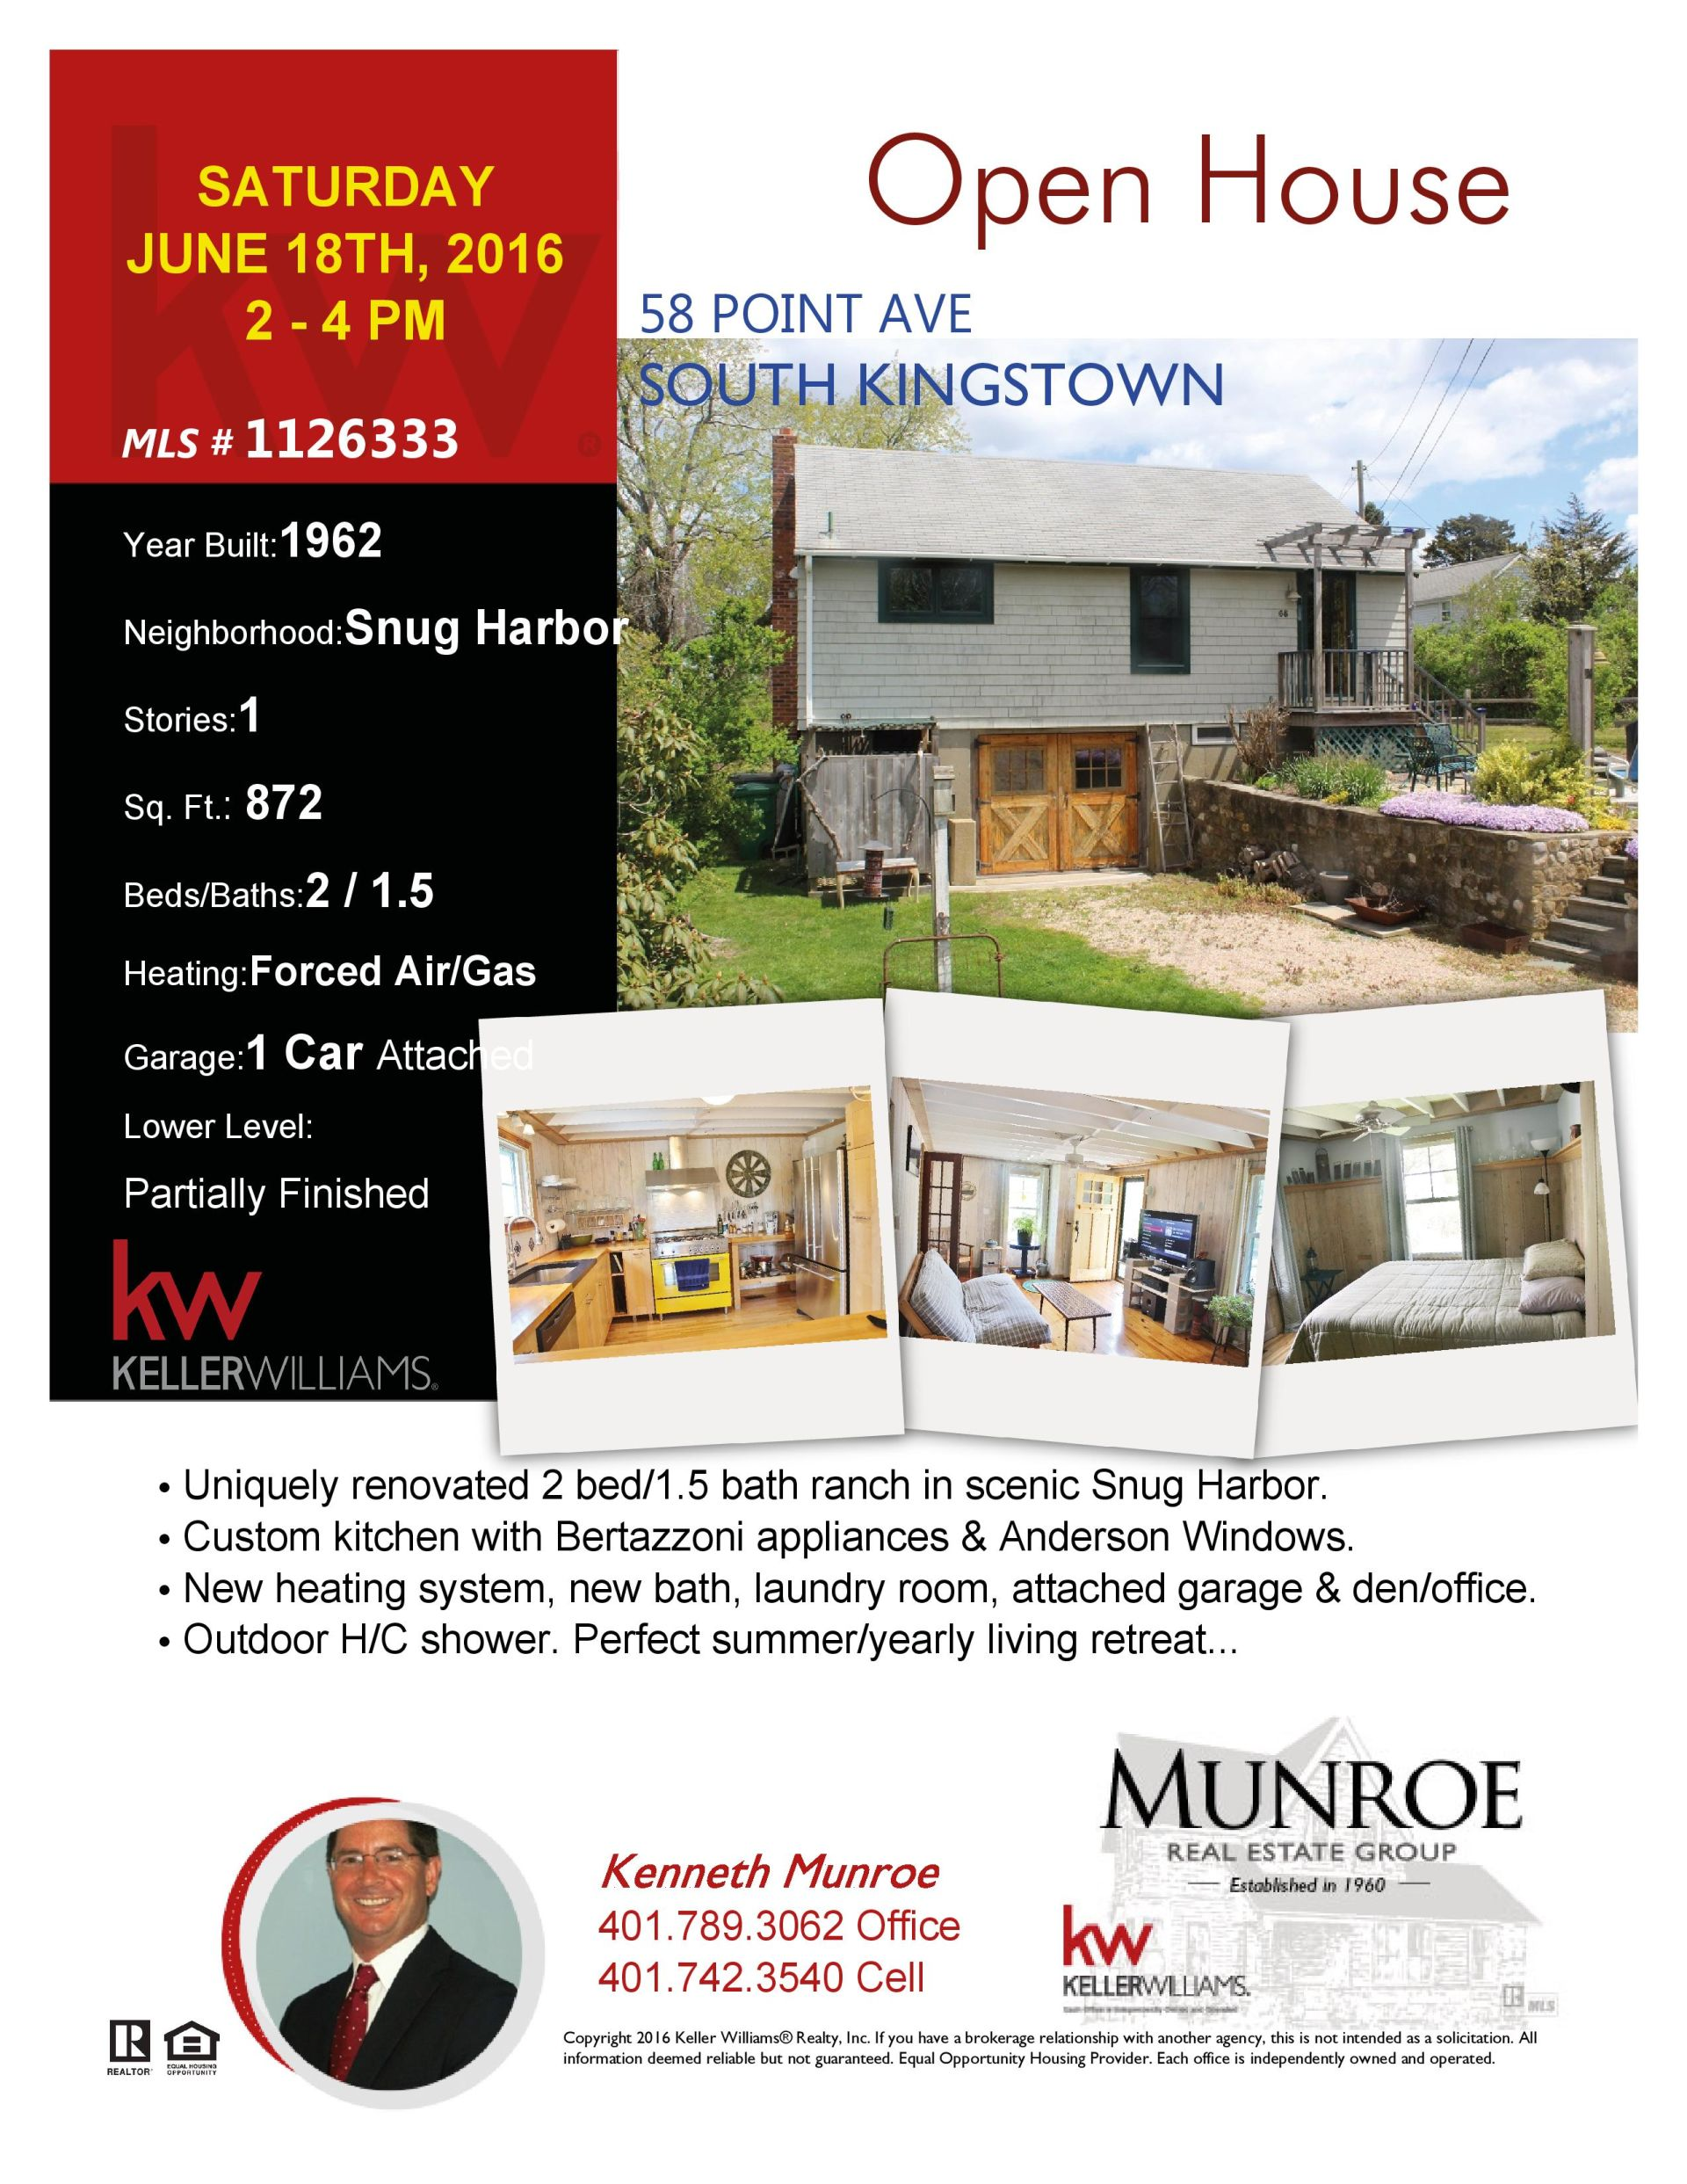 Open House in East Matunuck this Saturday!